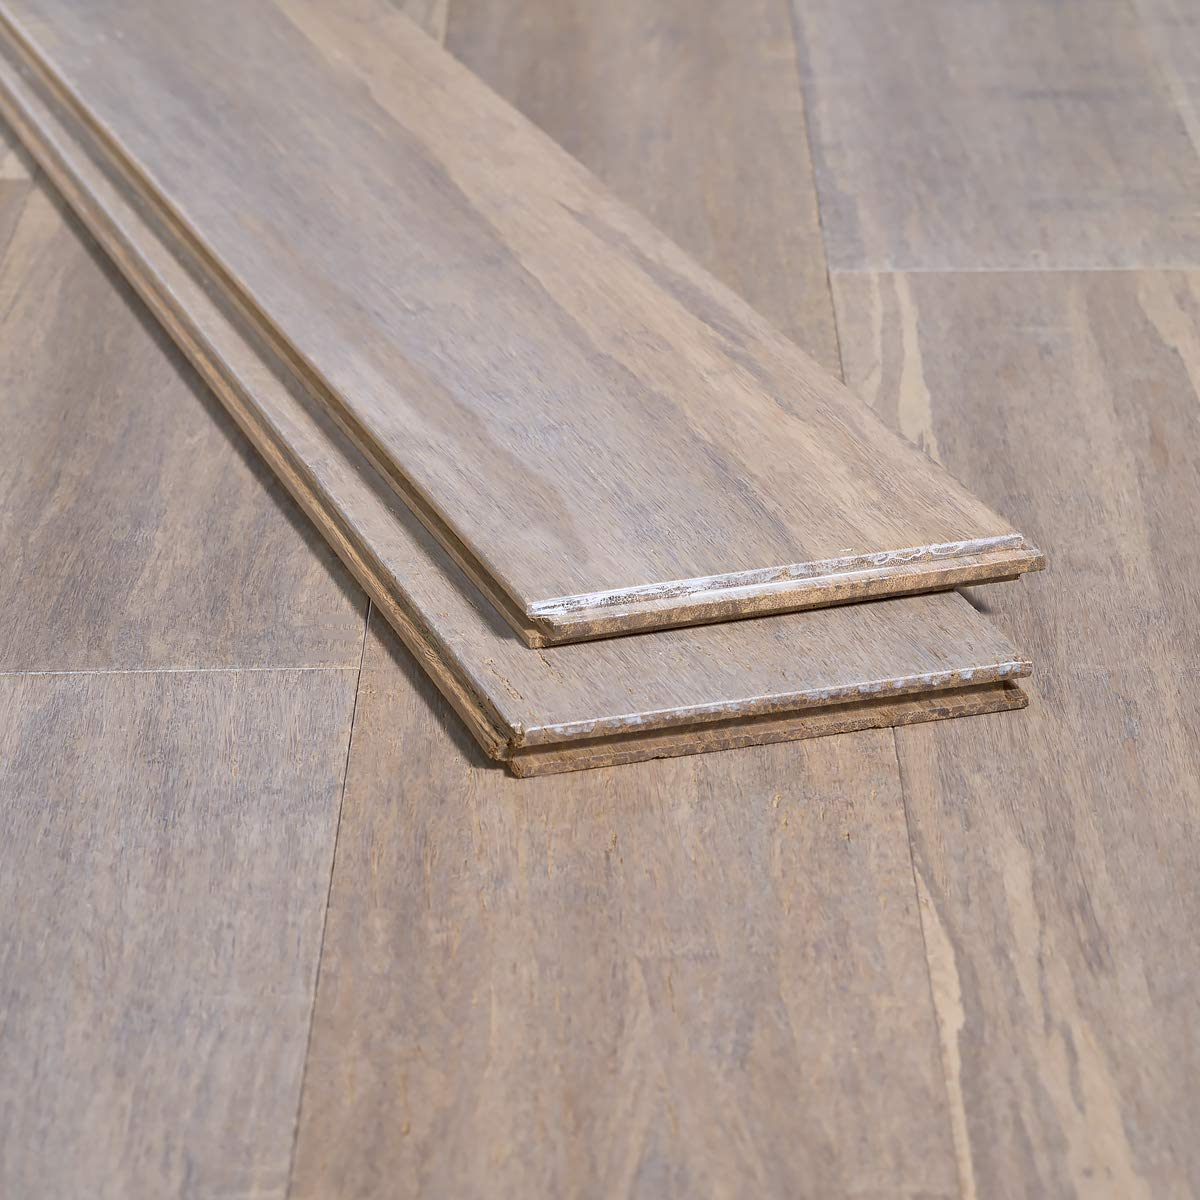 Ambient Bamboo - Bamboo Flooring Sample, Color: Tahoe Handscraped, Solid Strand Tongue and Groove